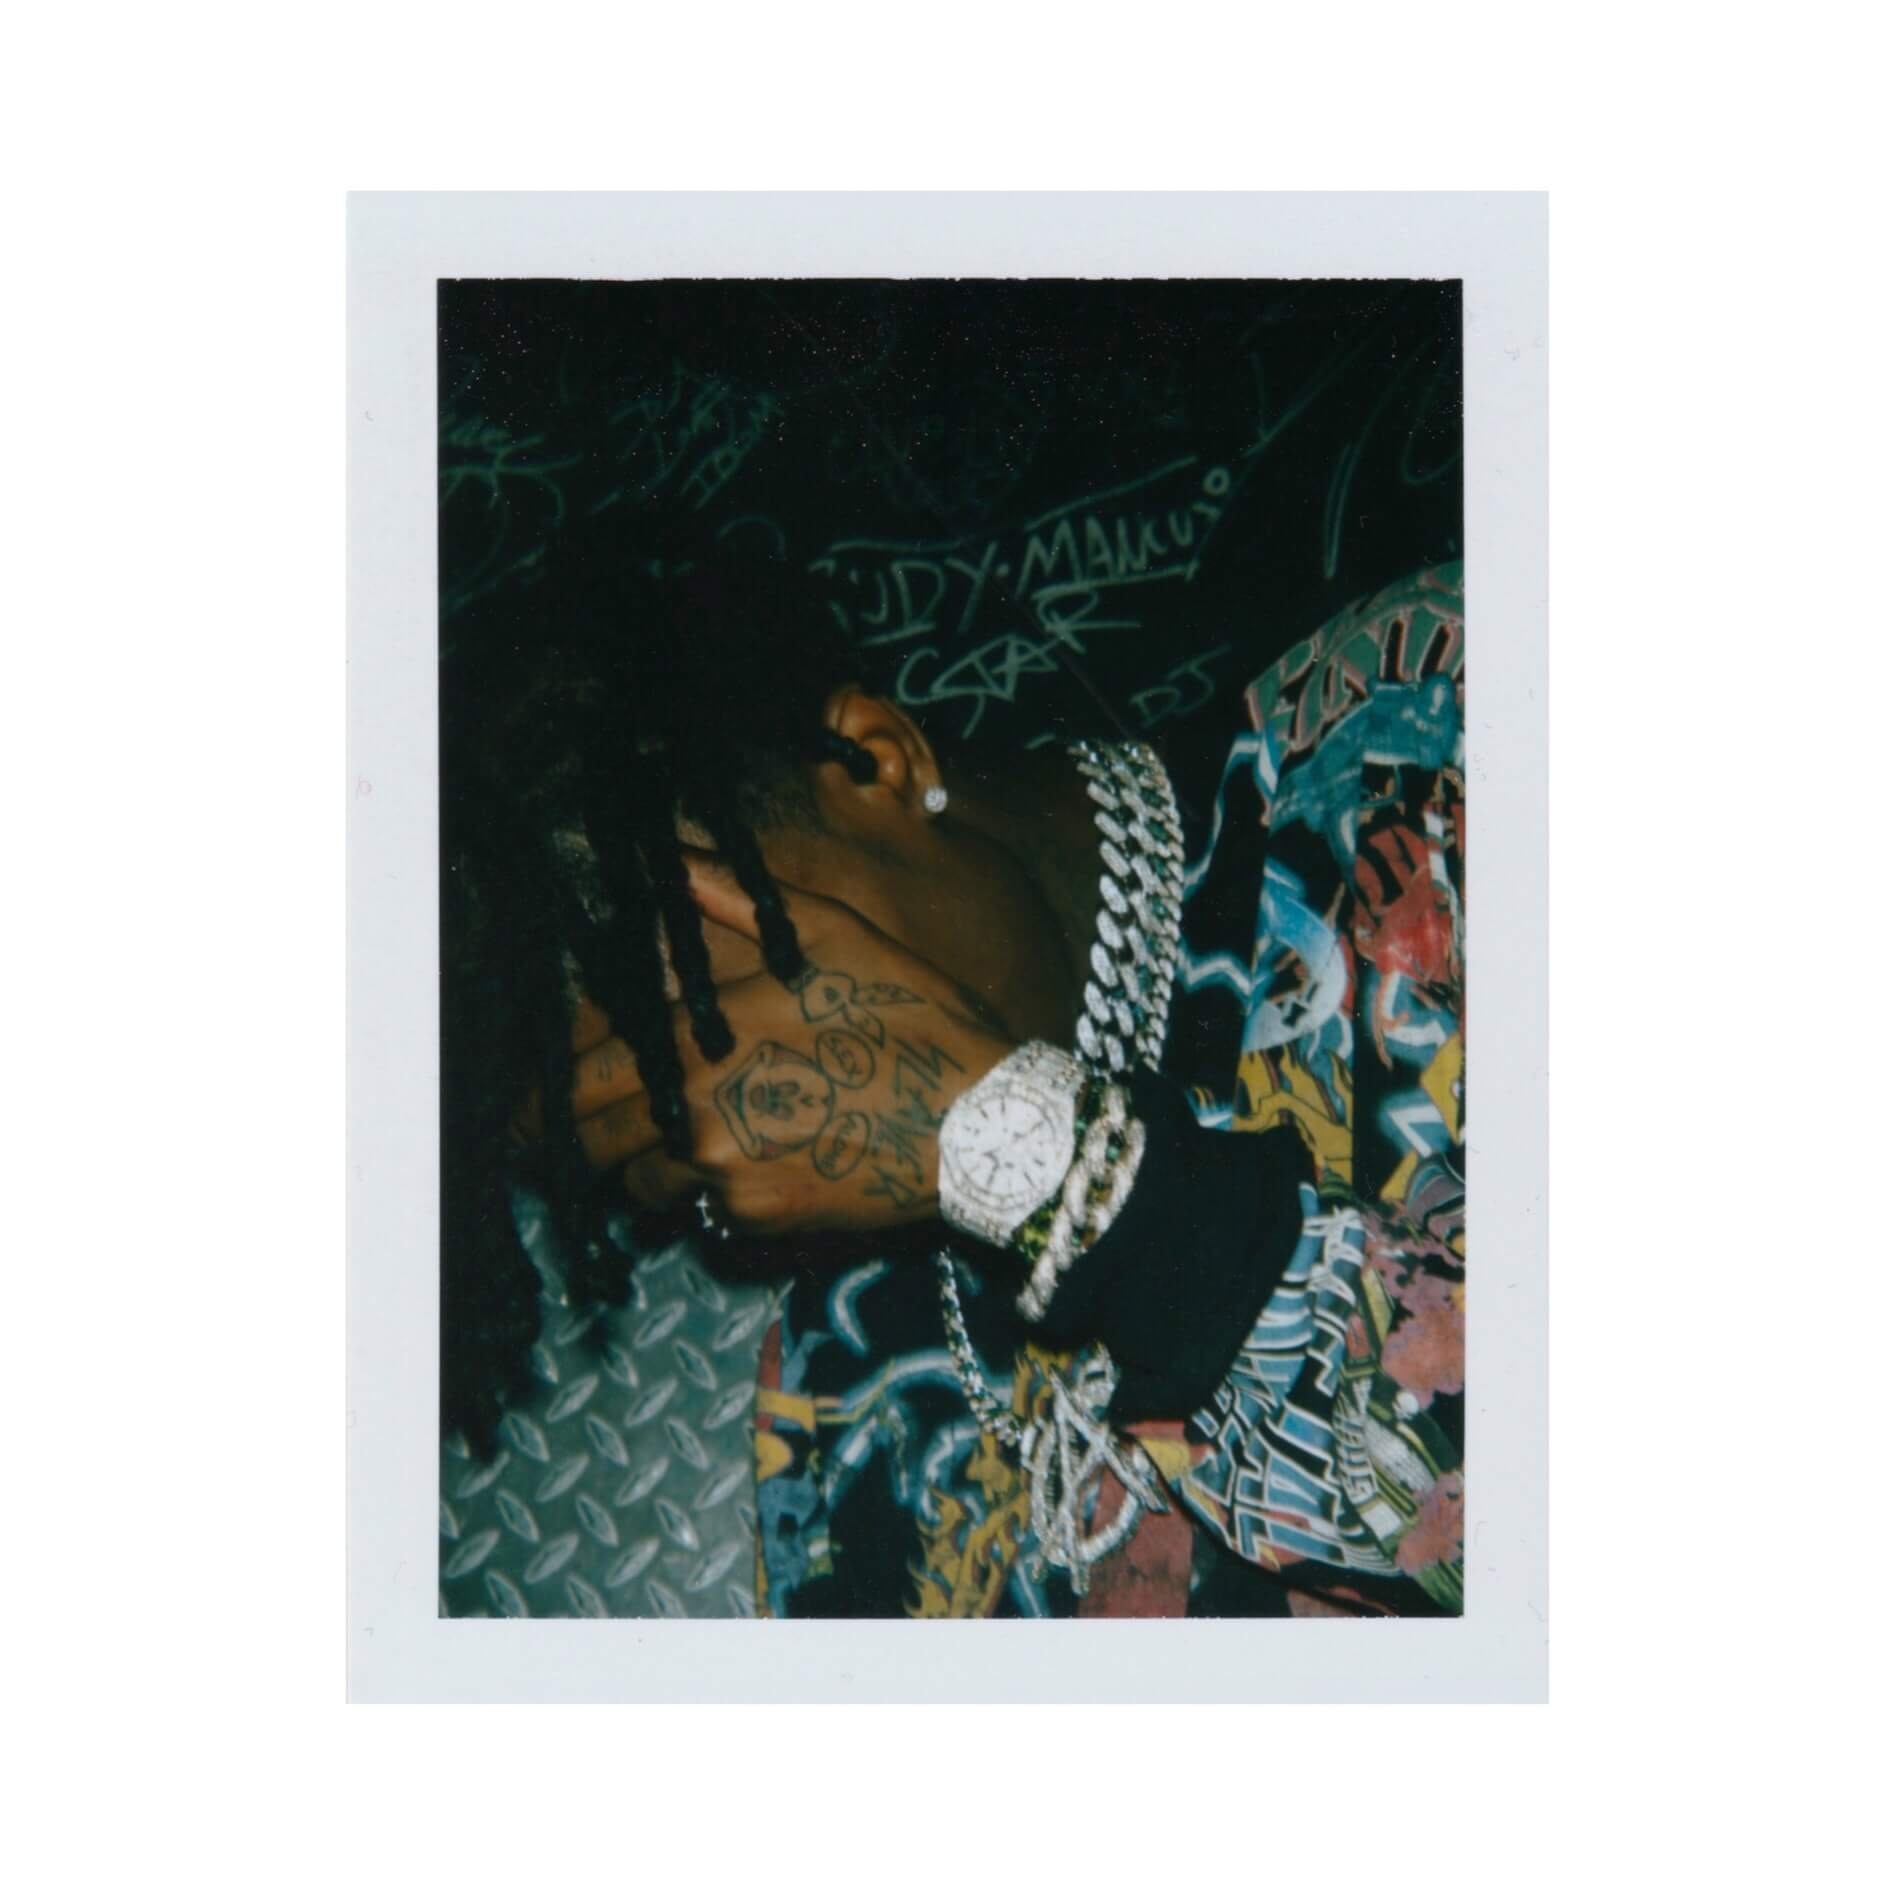 Playboi Carti. Fotografía: Stillz